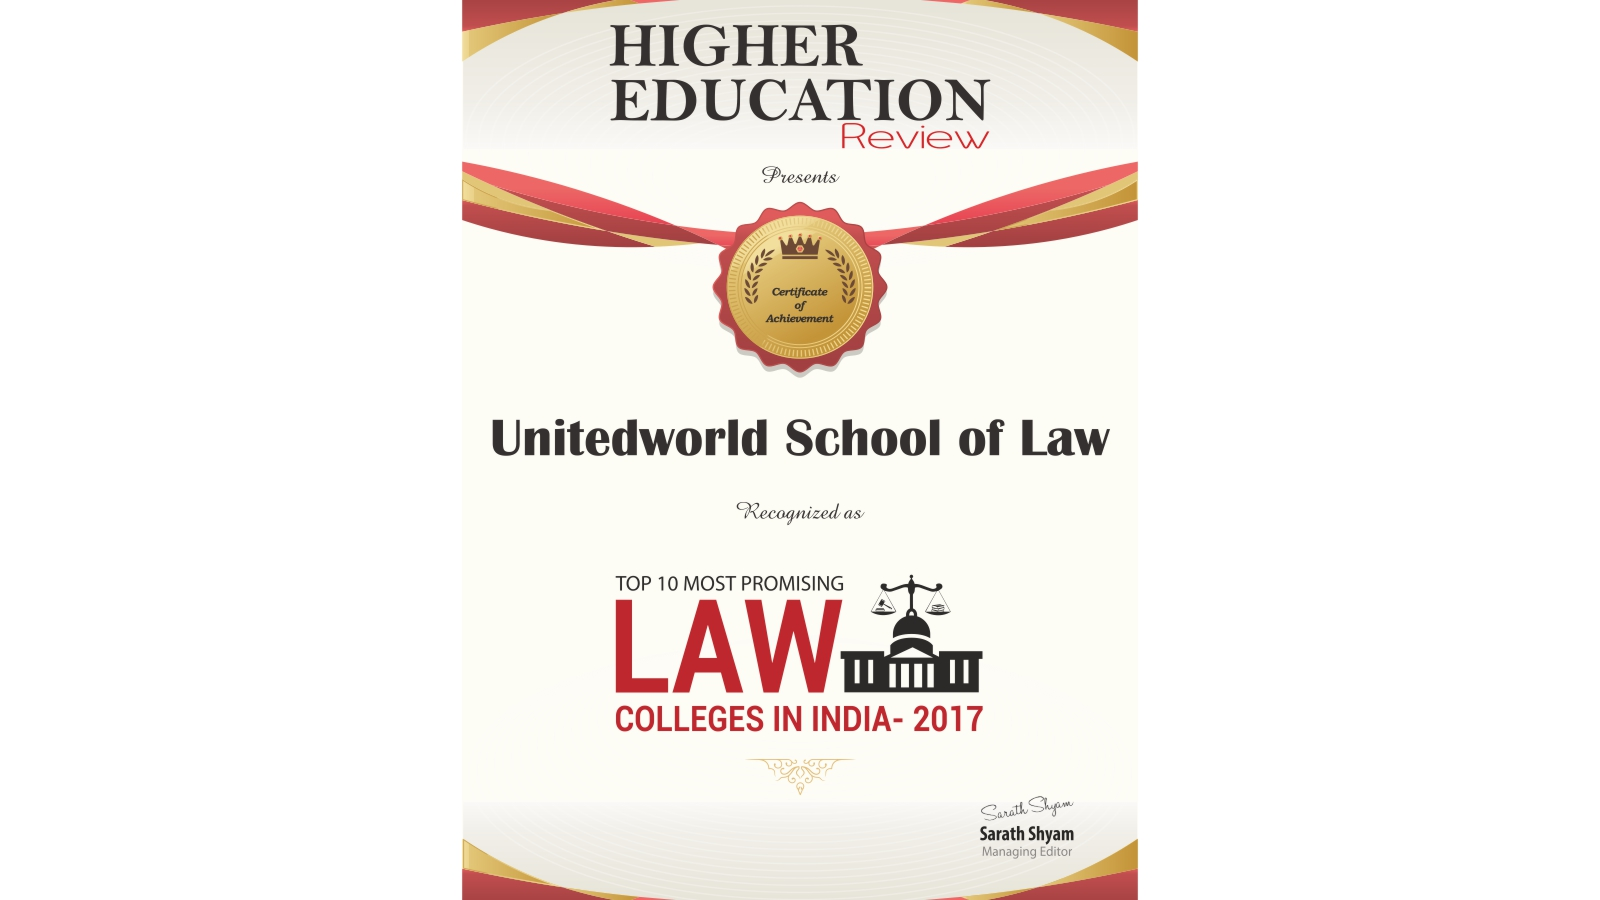 Top 10 Promising Law Colleges in India-2017 Image